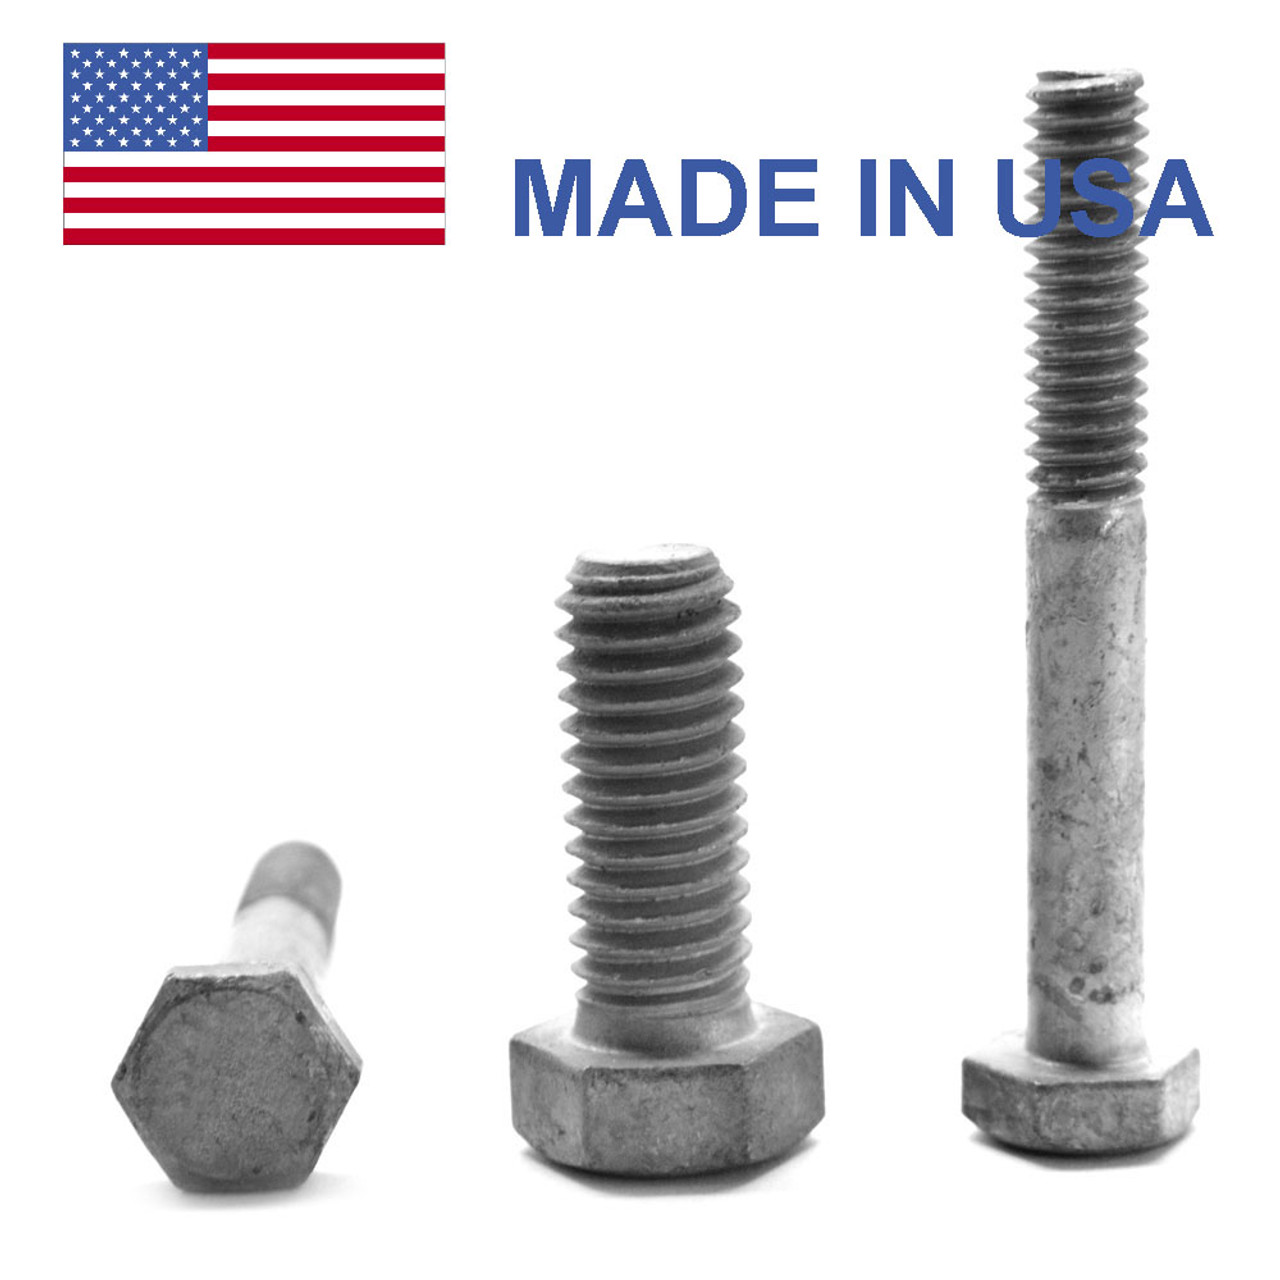 5 8 11 X 8 Coarse Thread Grade A325 Type 1 Heavy Hex Structural Bolt Usa Medium Carbon Steel Hot Dip Galvanized Asmc Industrial